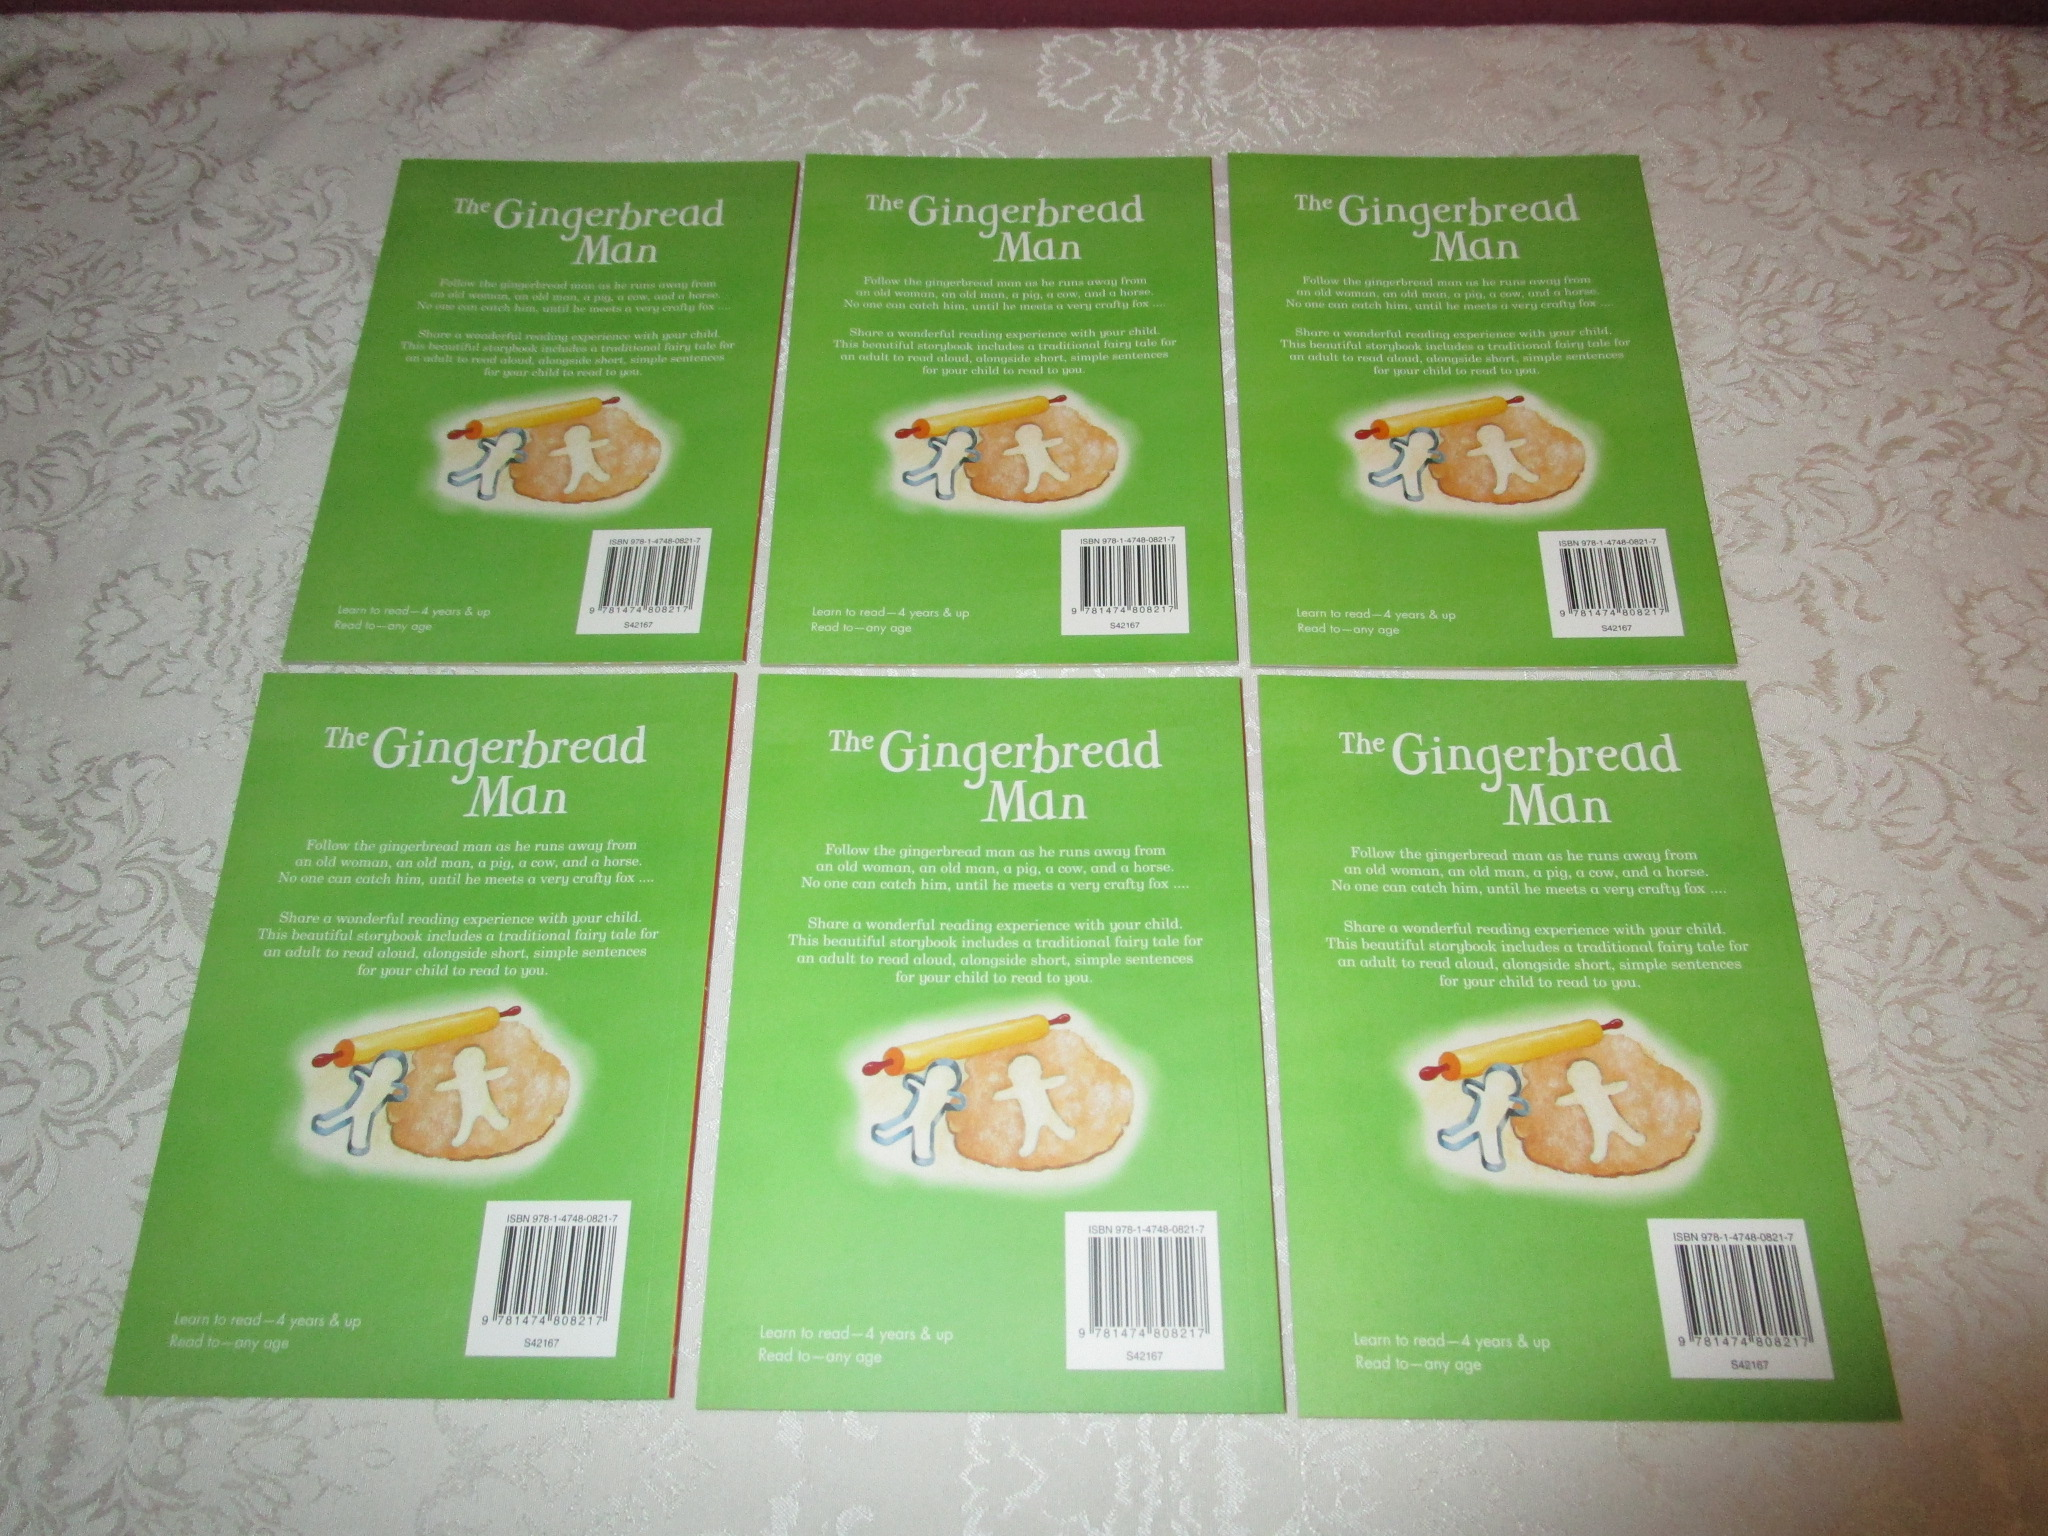 Image 1 of The Gingerbread Man Gail Yerrill Lot of 6 Brand New SC Reader Size